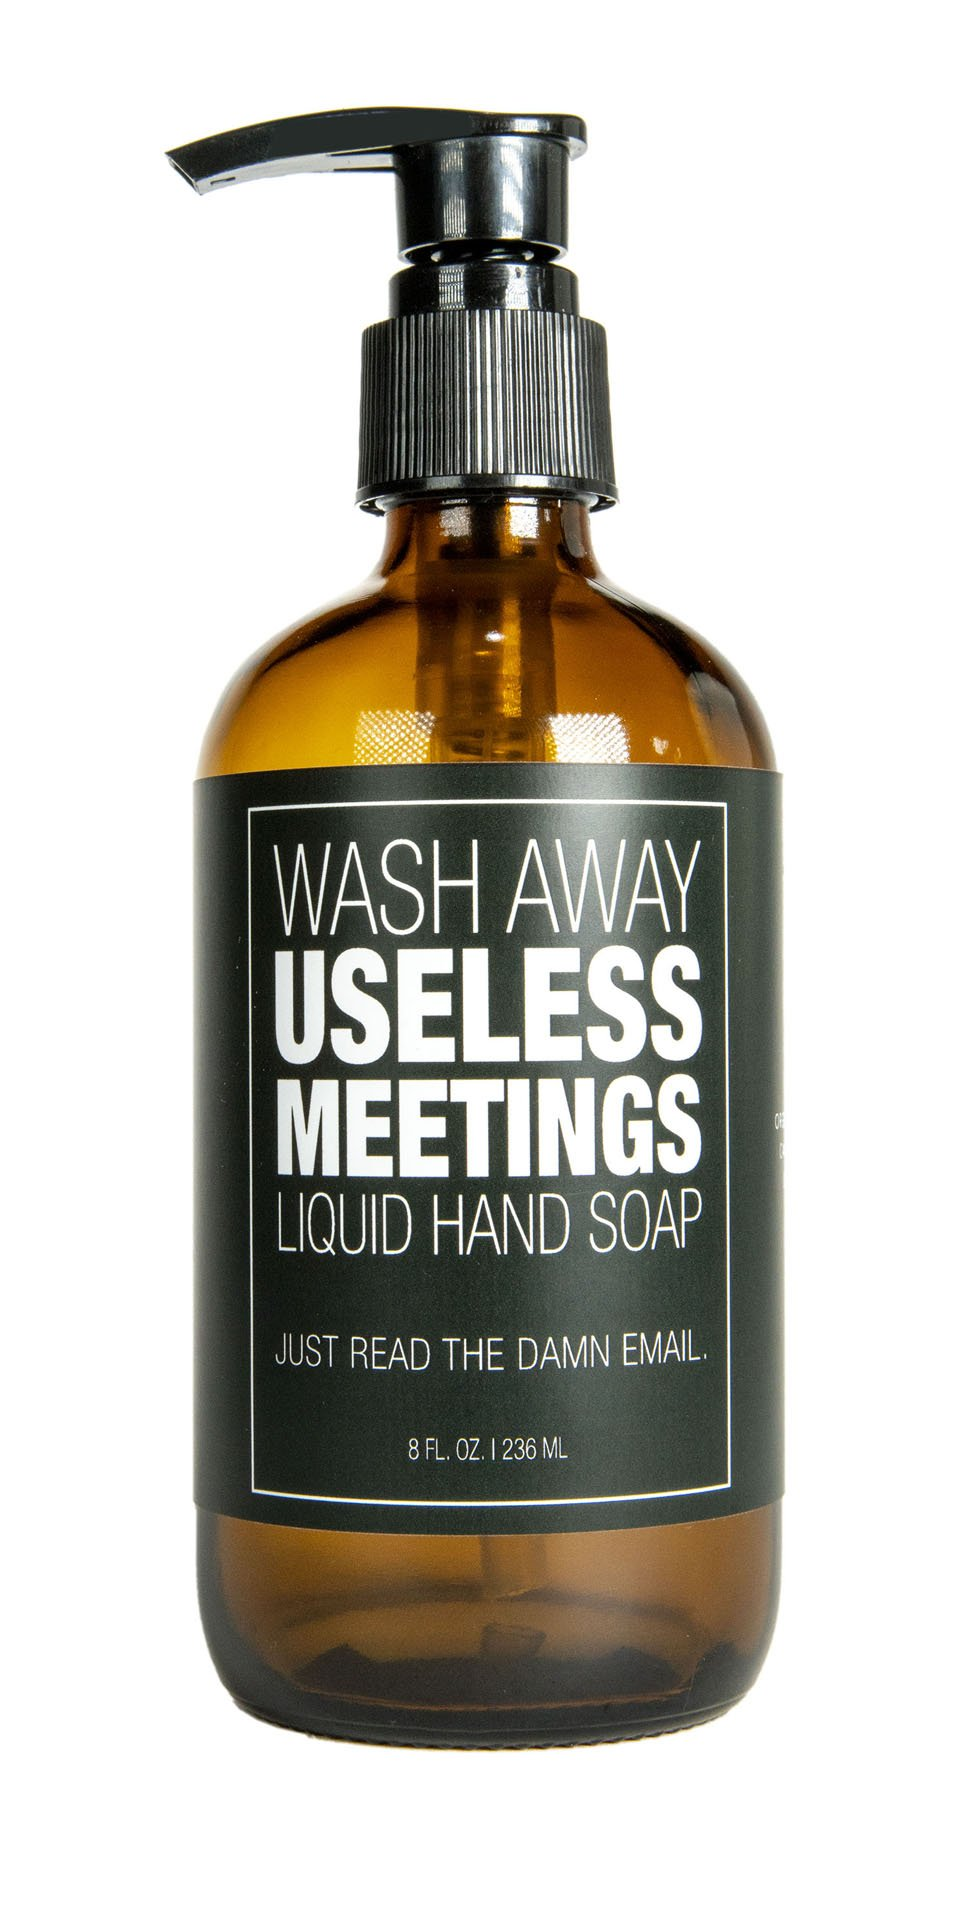 Liquid Hand Soap - Useless Meetings - Heart of the Home PA